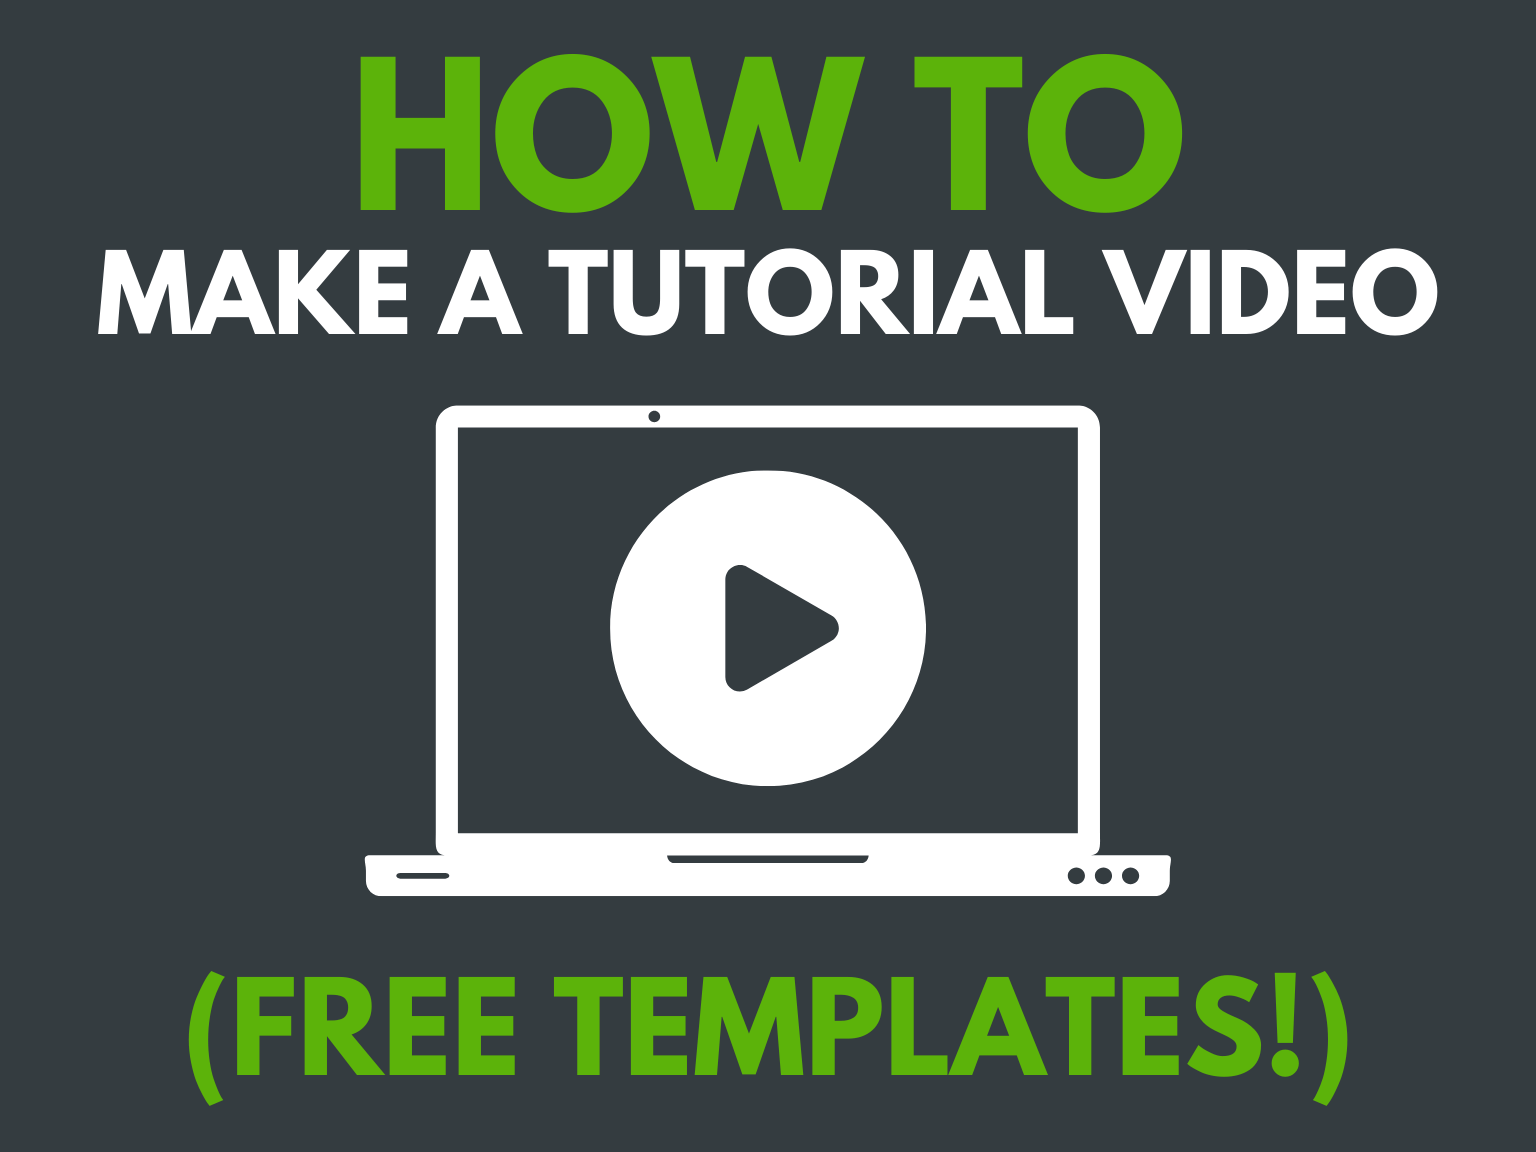 How to Make a Tutorial Video